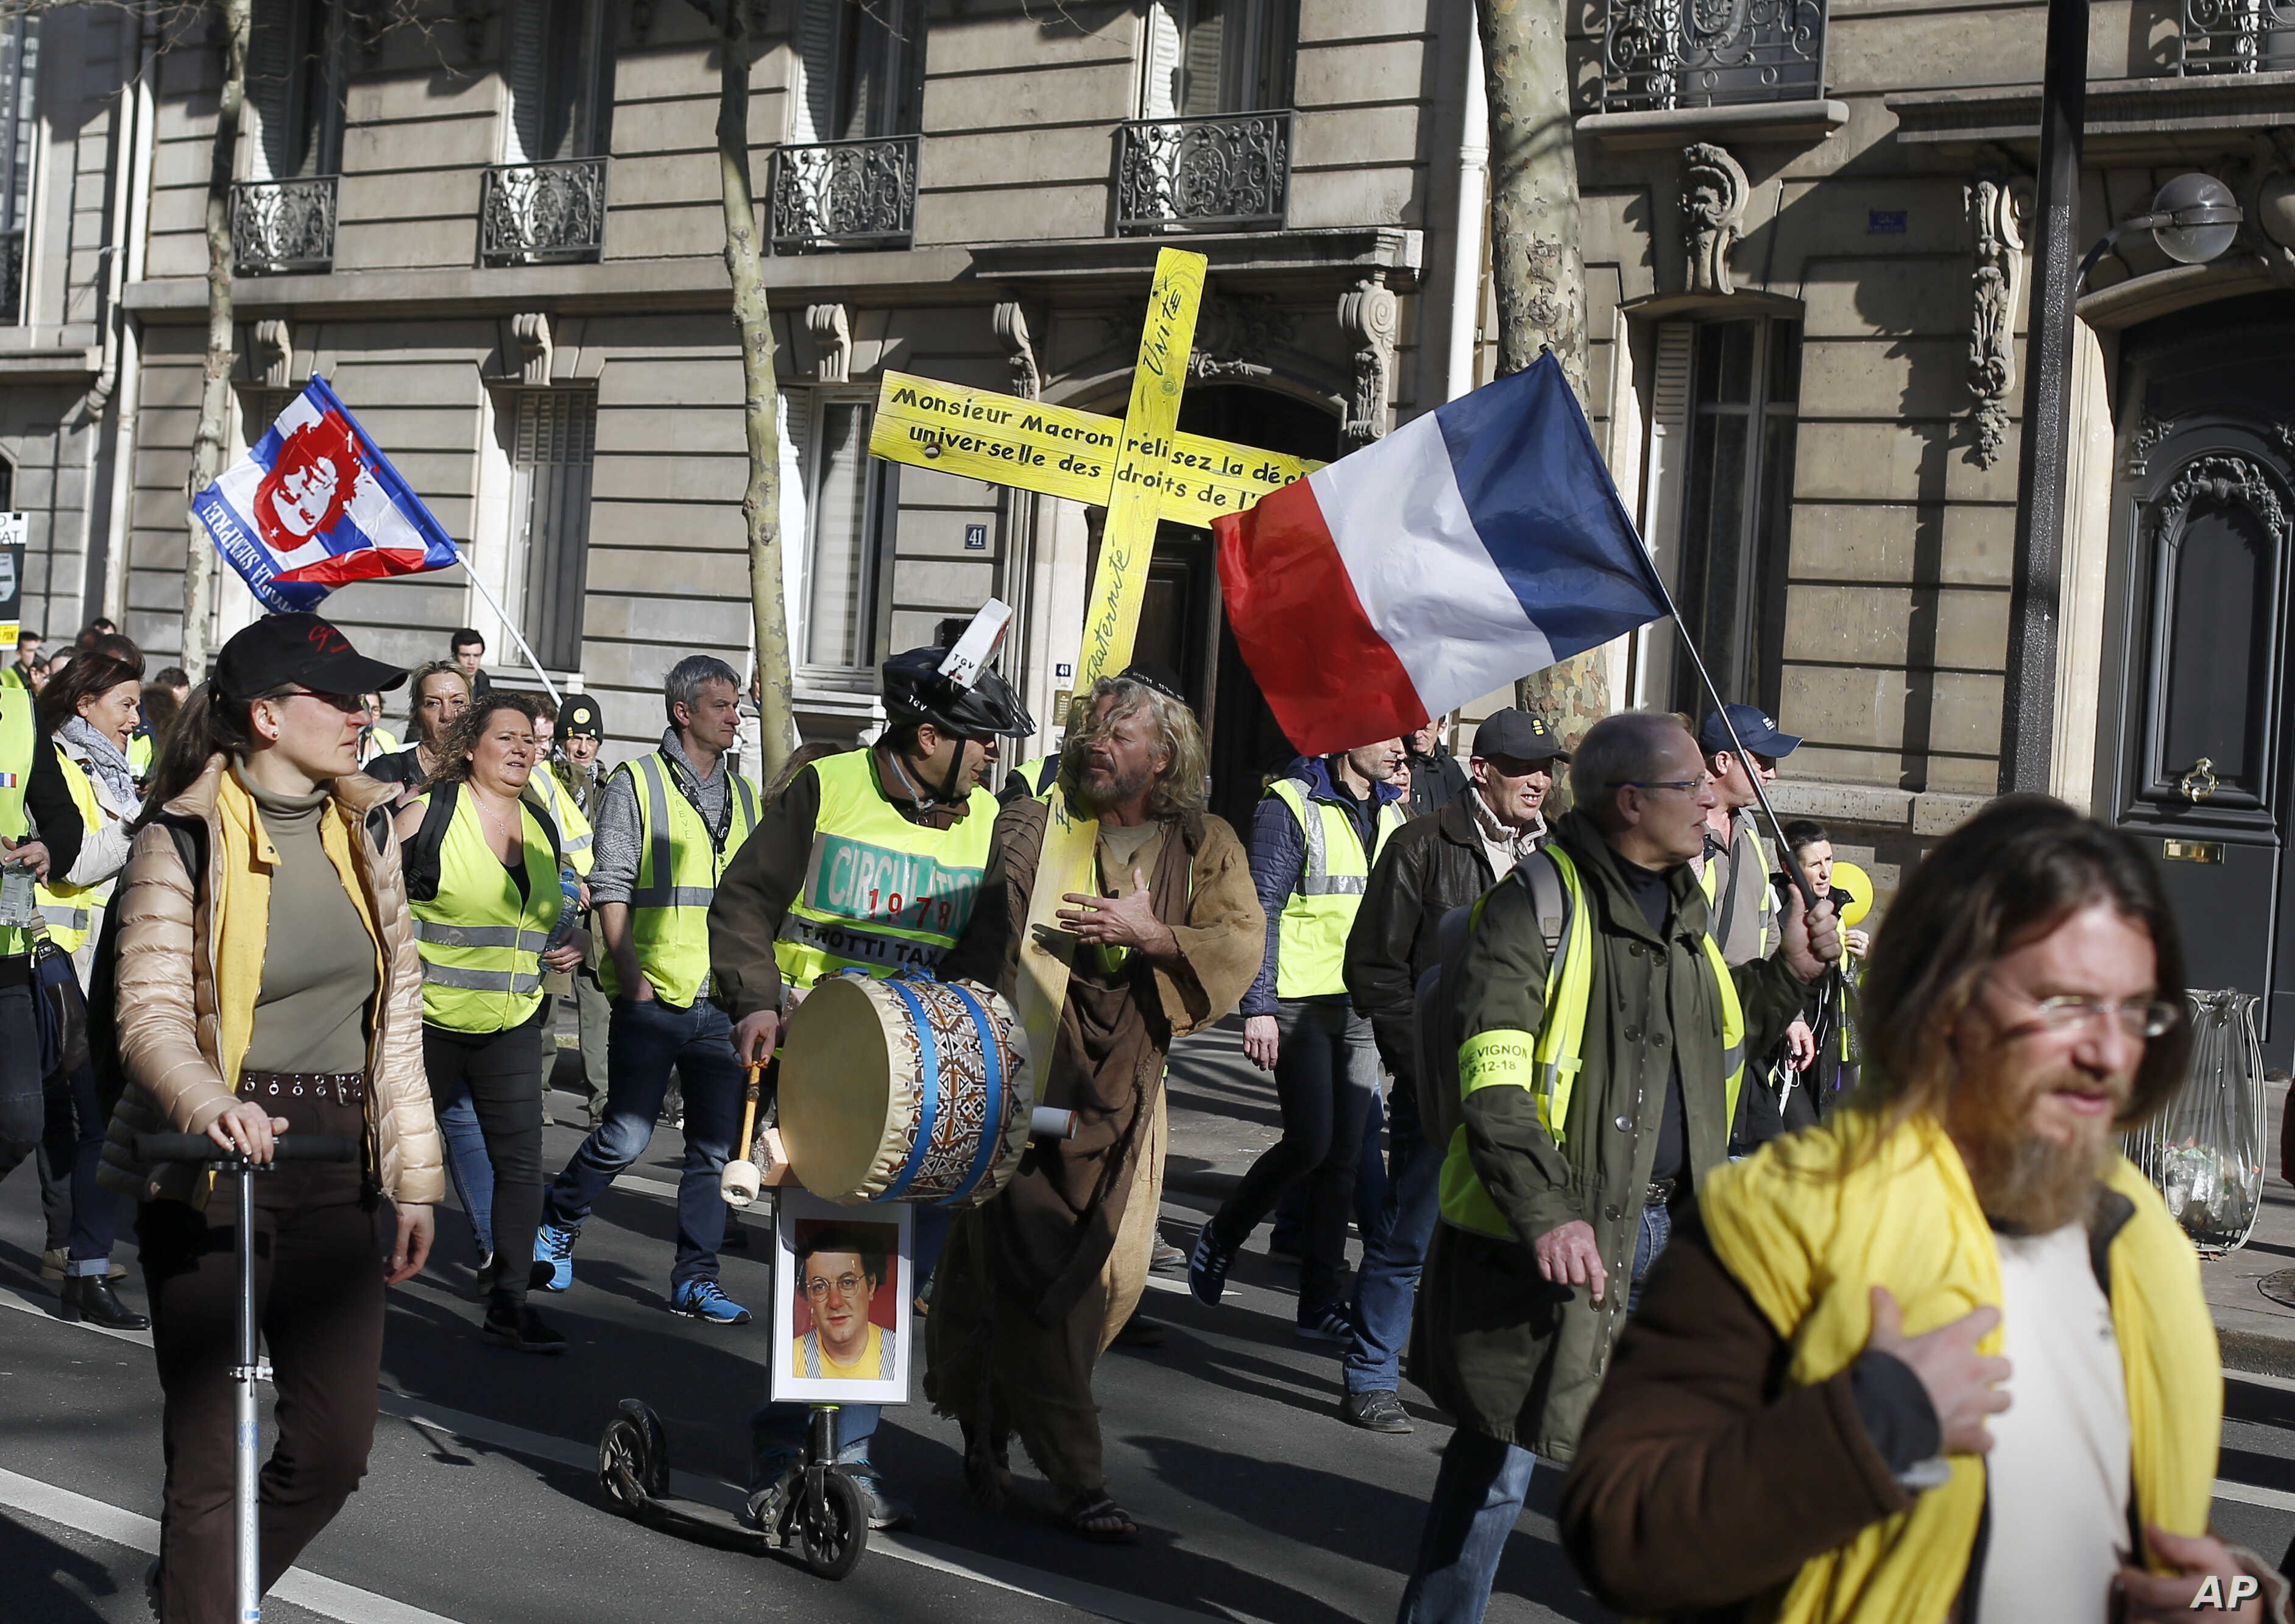 Yellow vest protesters march during a protest in Paris, France, Feb. 17, 2019.